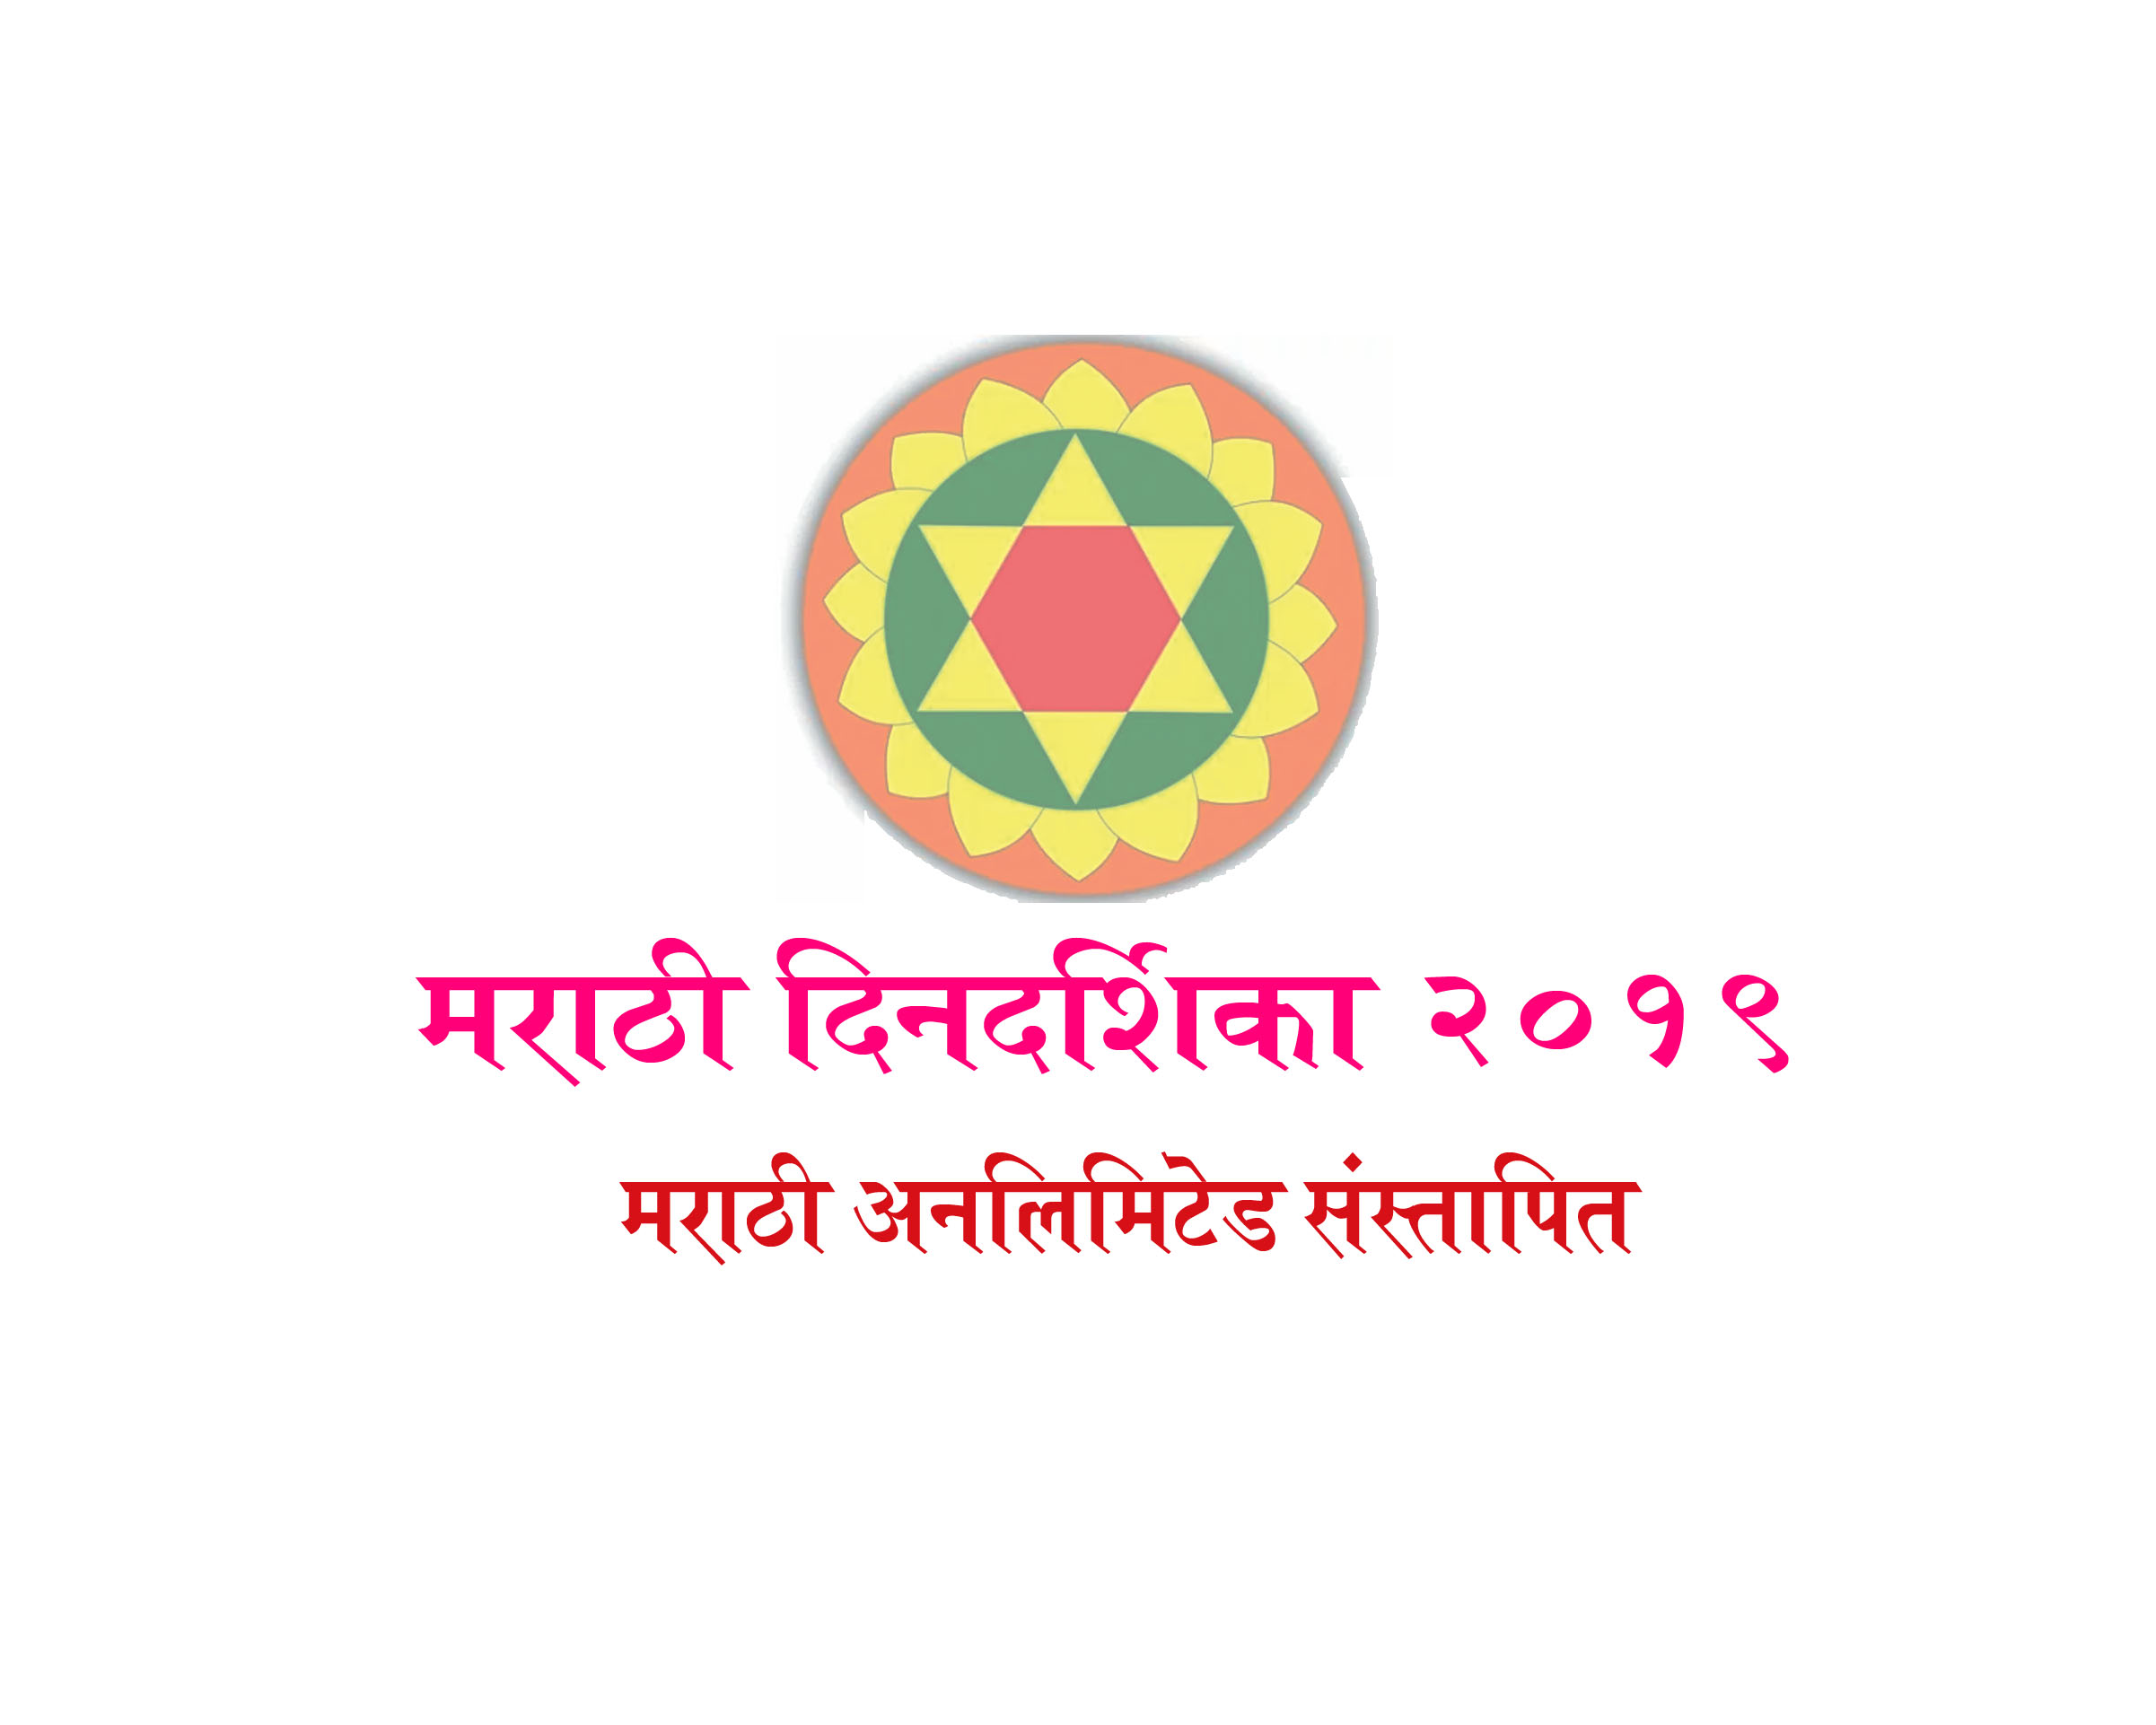 marathi calendar 2019 pdf version free download marathi almanac